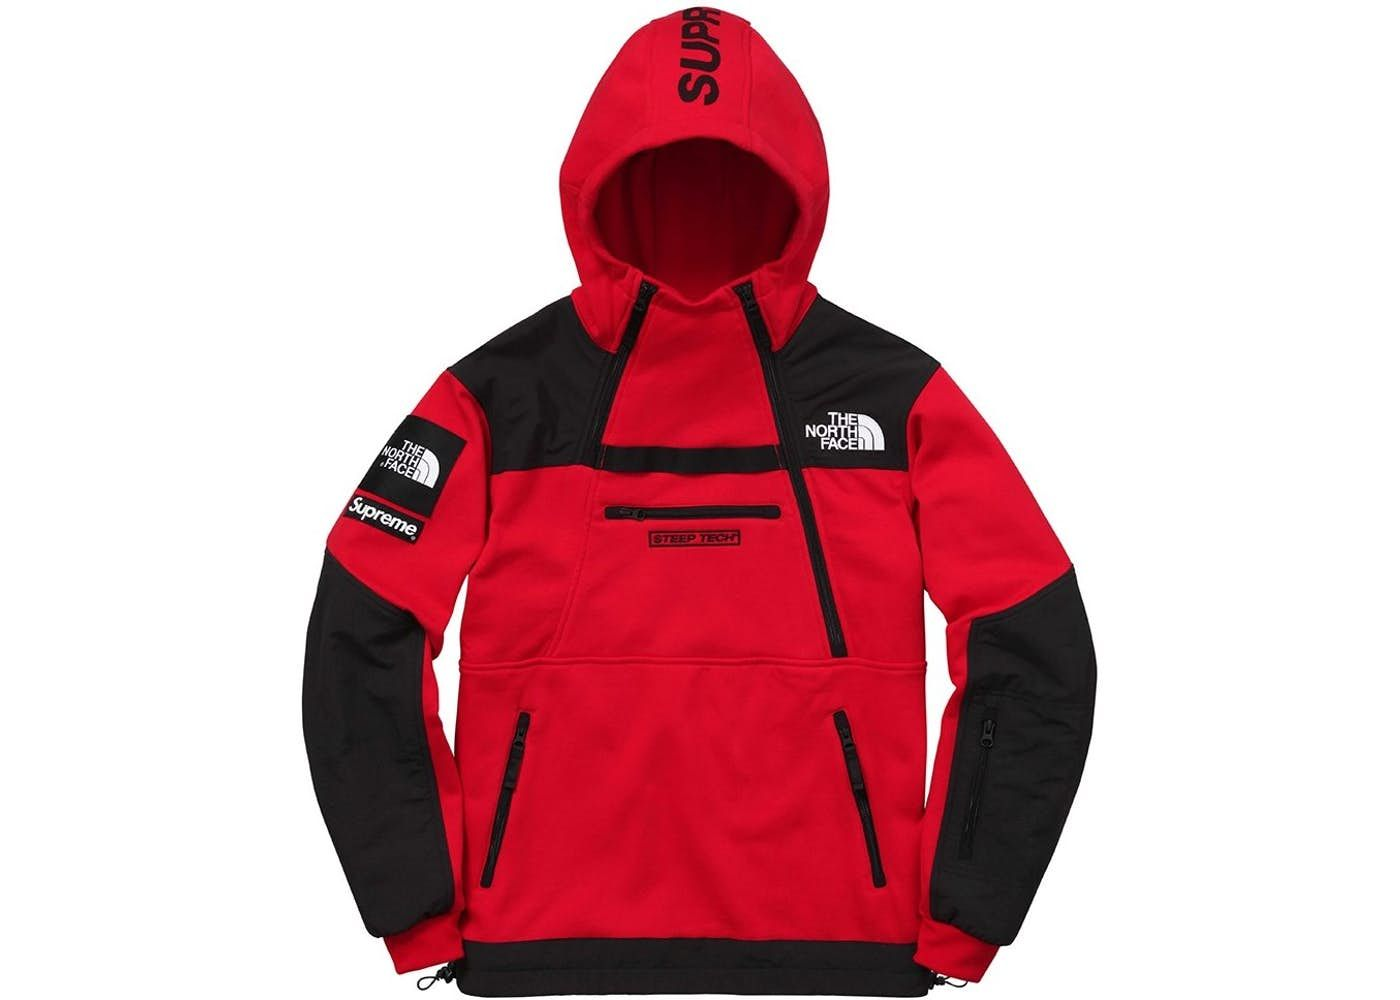 Supreme The North Face Steep Tech Hooded Sweatshirt Red In 2021 North Face Jacket Mens Dress Suits For Men Outerwear Outfit [ 1000 x 1400 Pixel ]